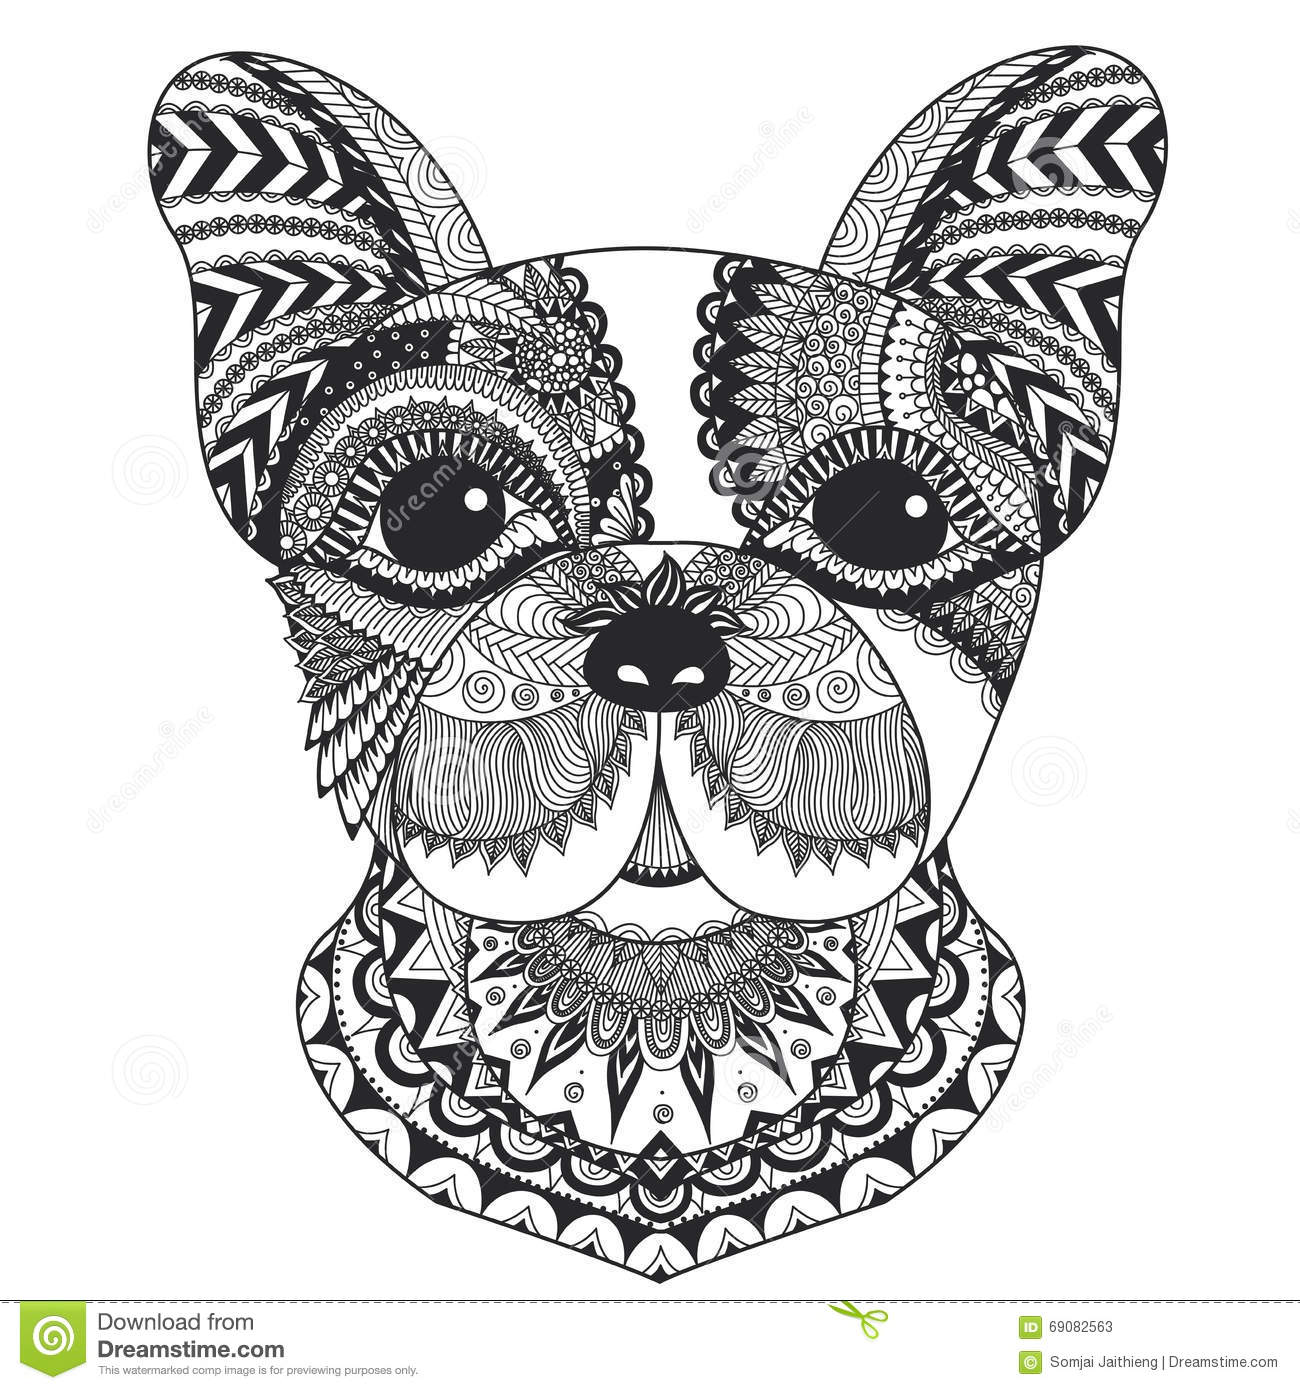 French Bulldog Line Art Design For Coloring Book For Adult